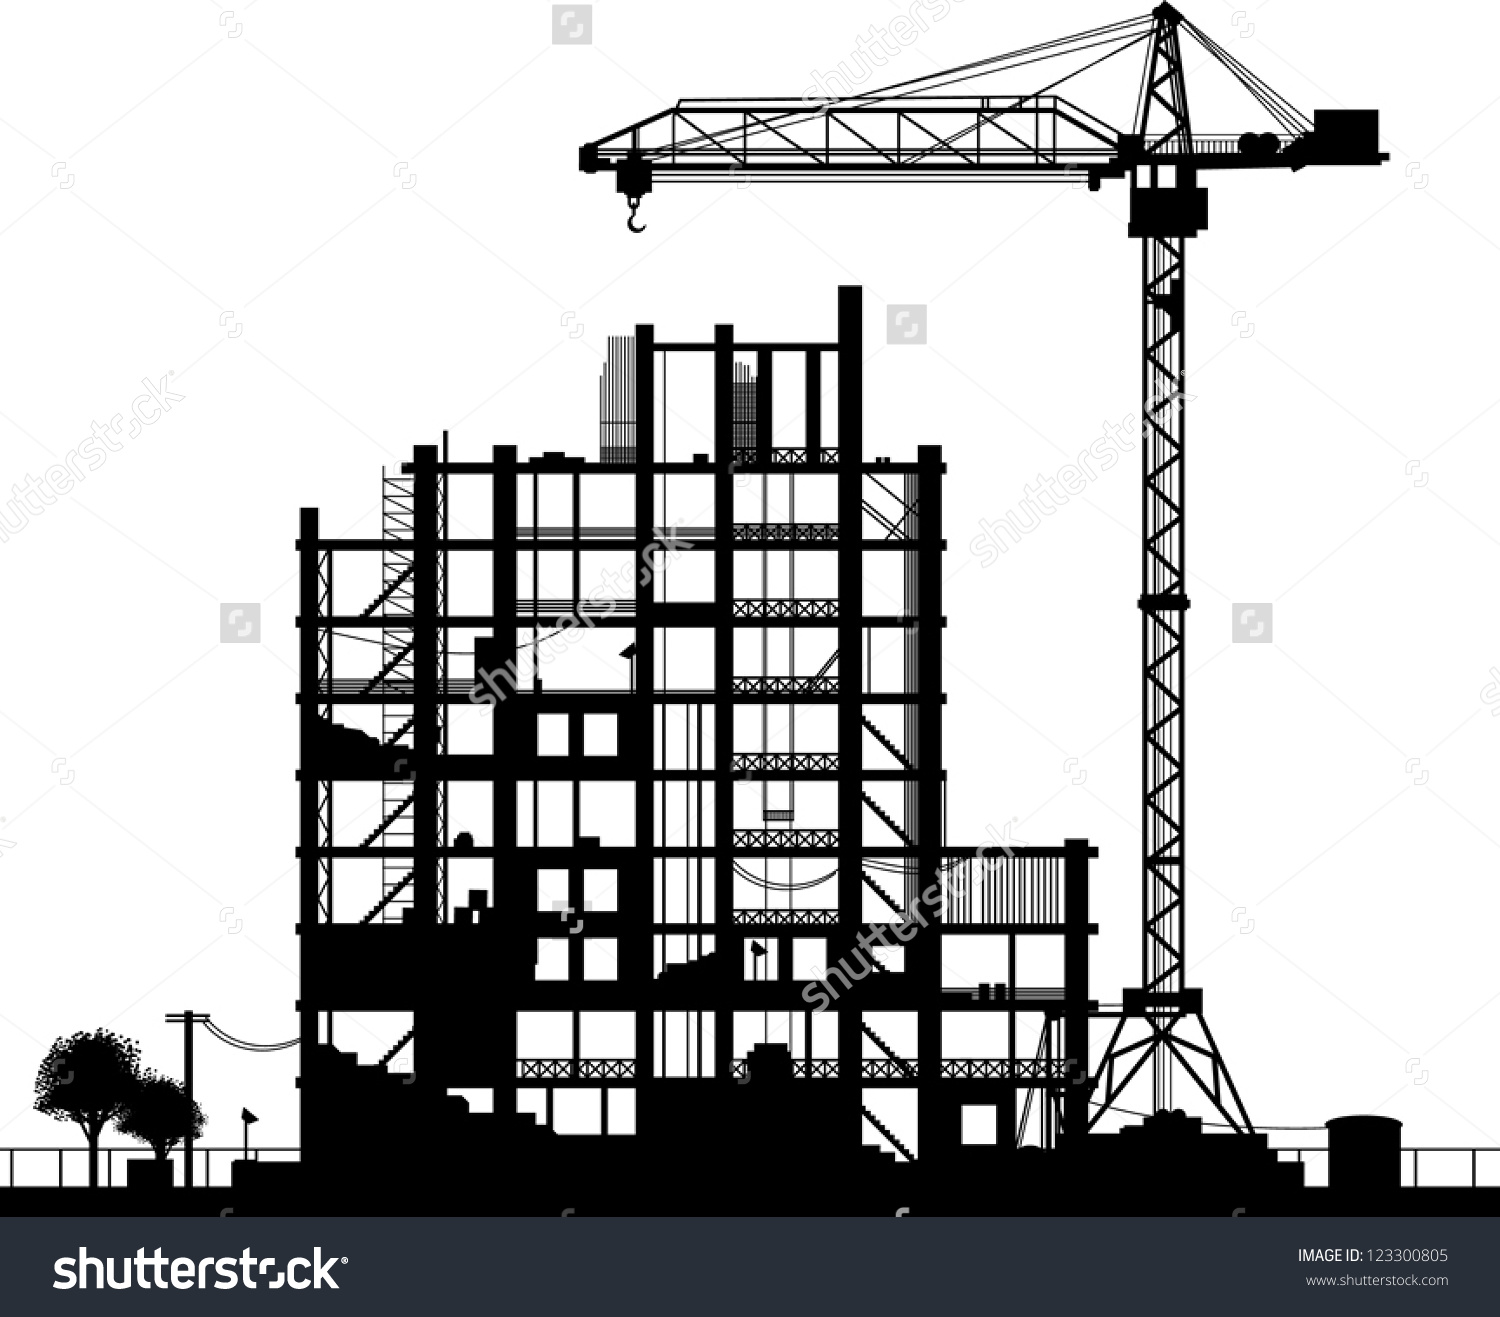 Construction site background clipart svg free download Construction Site Silhouette On White Background Stock Vector ... svg free download